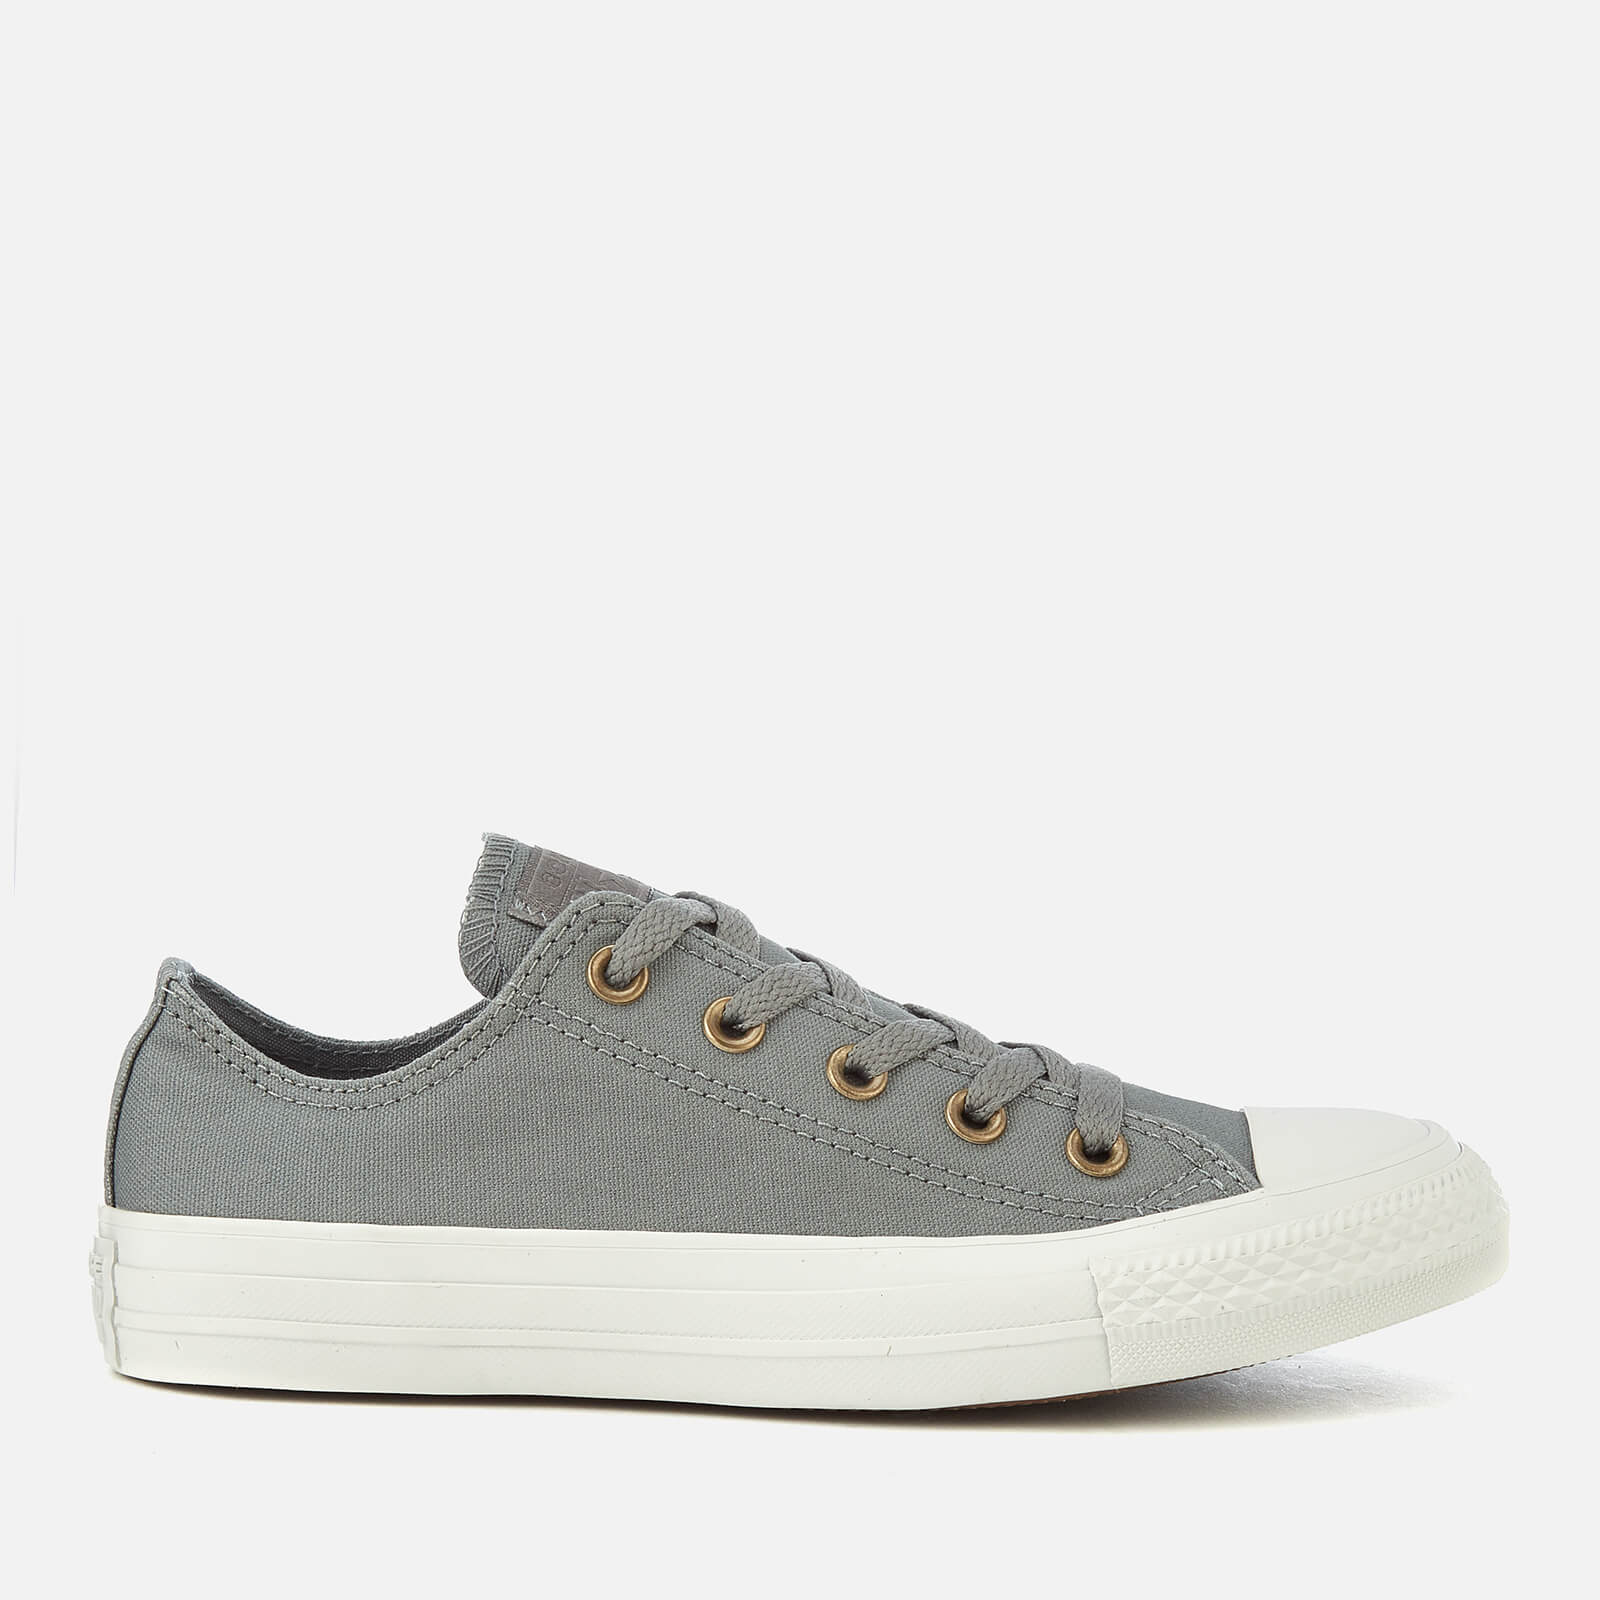 Converse Women s Chuck Taylor All Star Ox Trainers - Mason Mouse ... 3a2a5878f